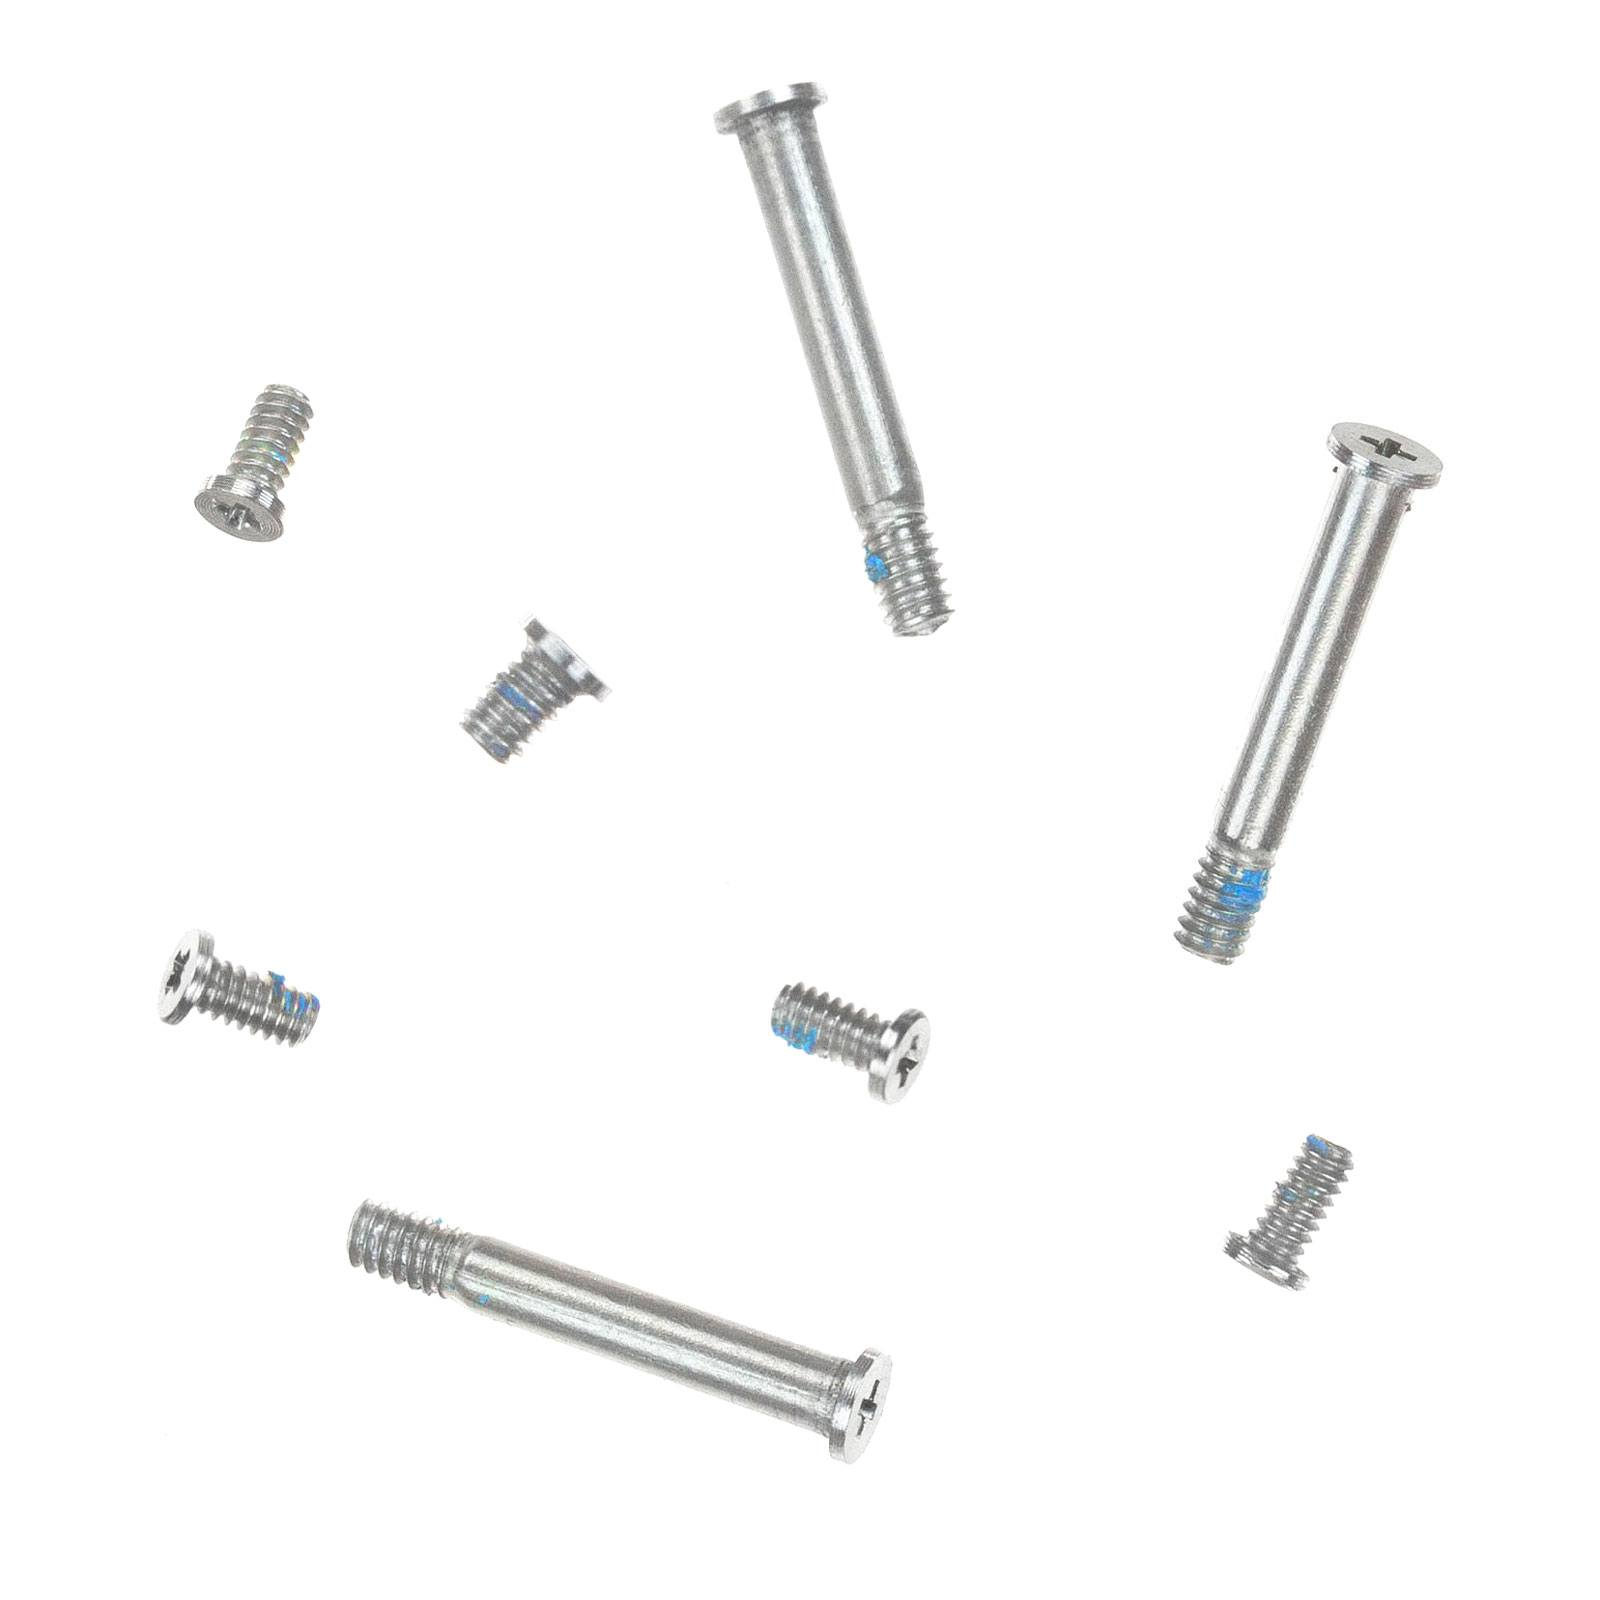 Bottom Case Screws (PH000 Phillips)